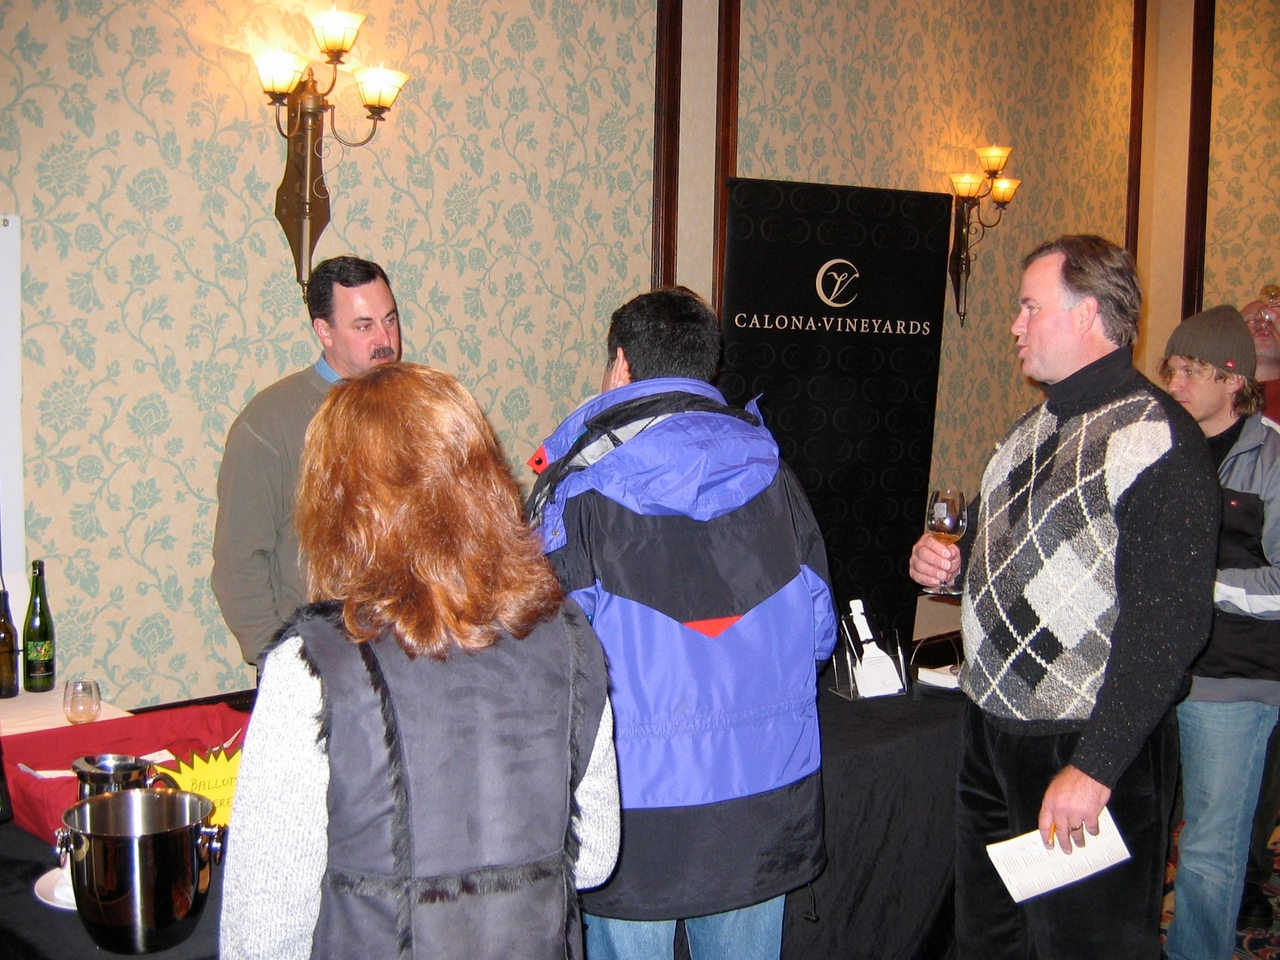 Each winery has a representative to explain the wines.